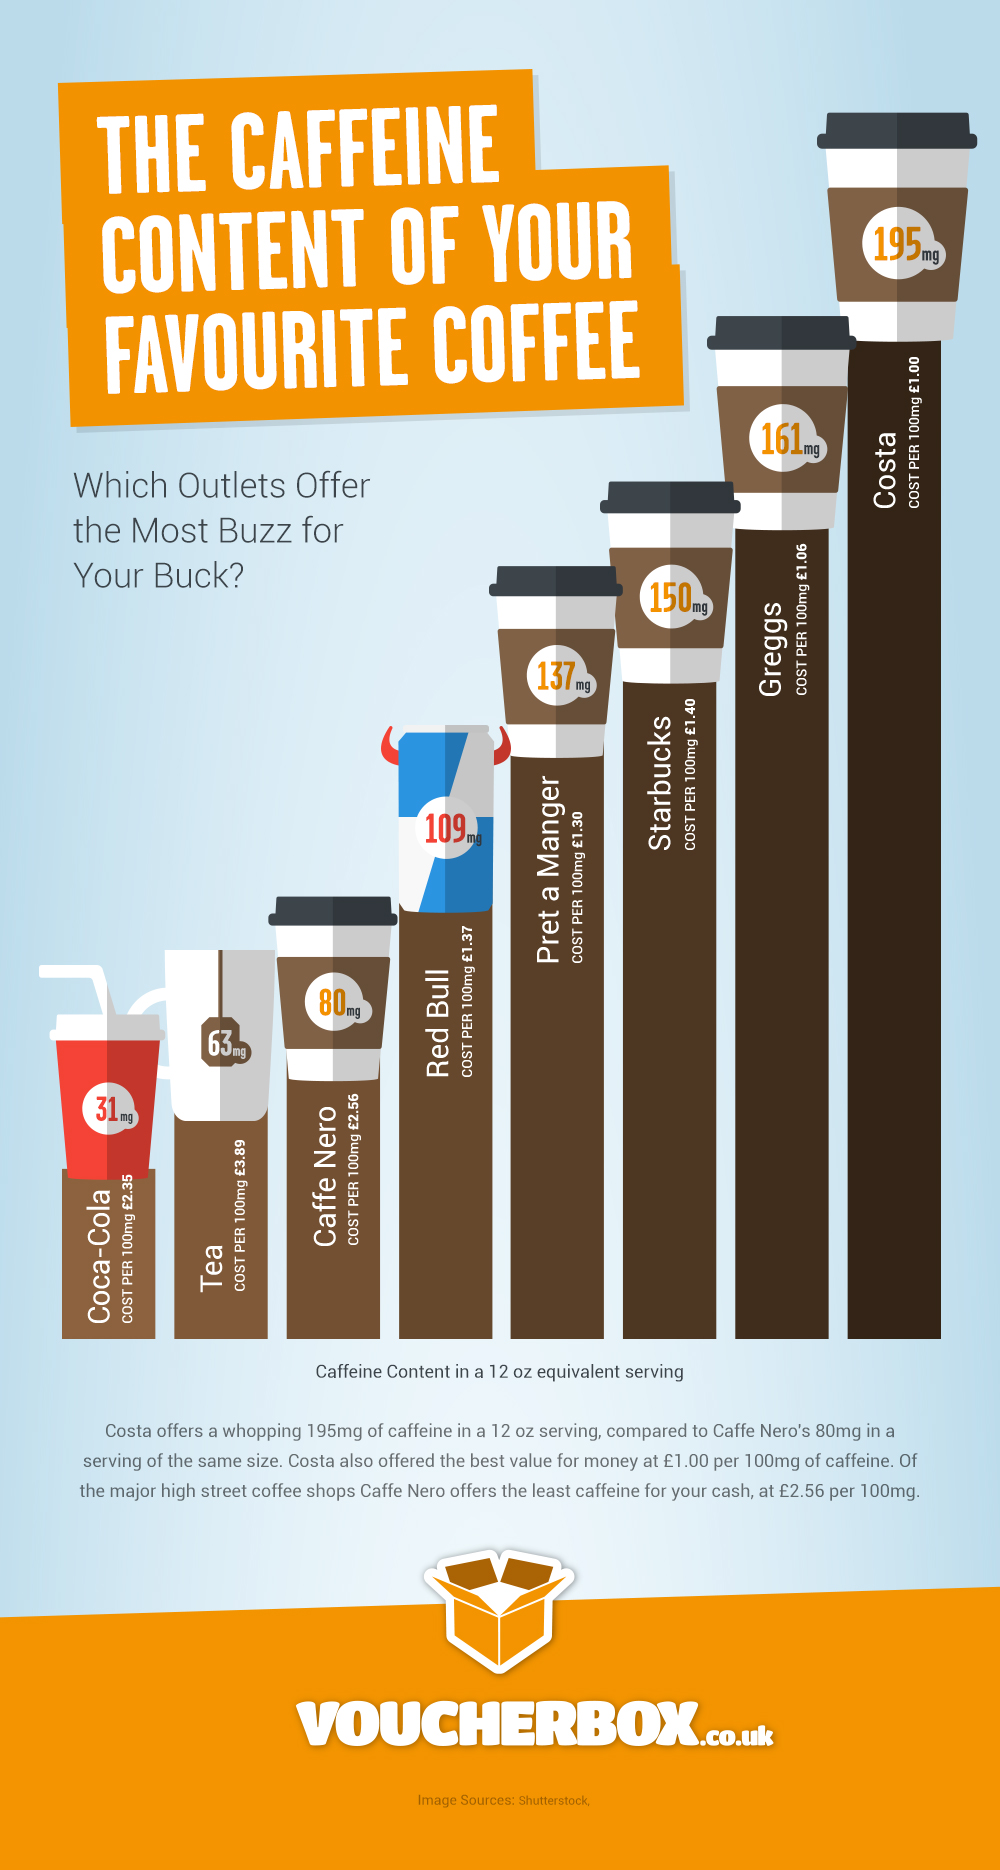 Caffeine Content Infographic Voucherbox Verything